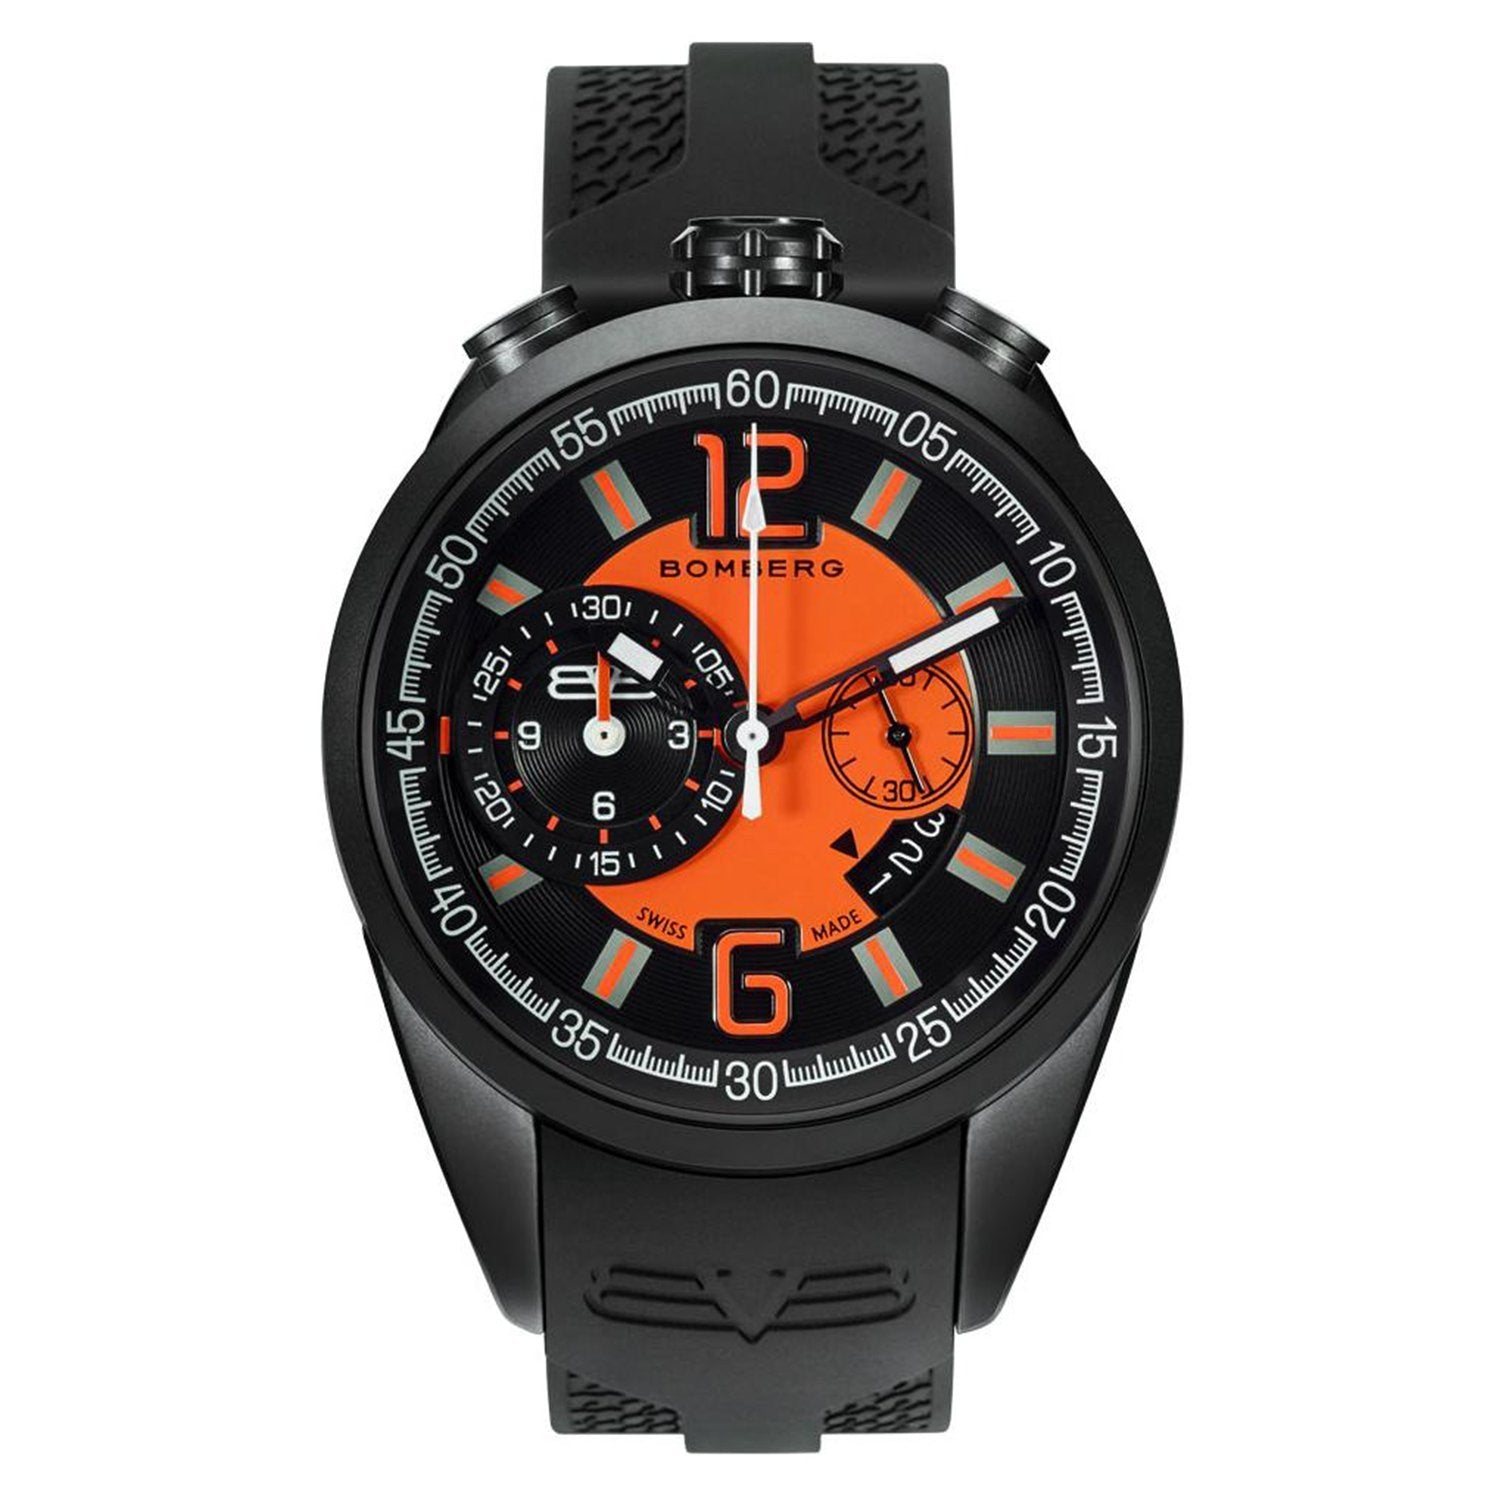 Bomberg 1968 Chronograph Black PVD Black - Watches & Crystals